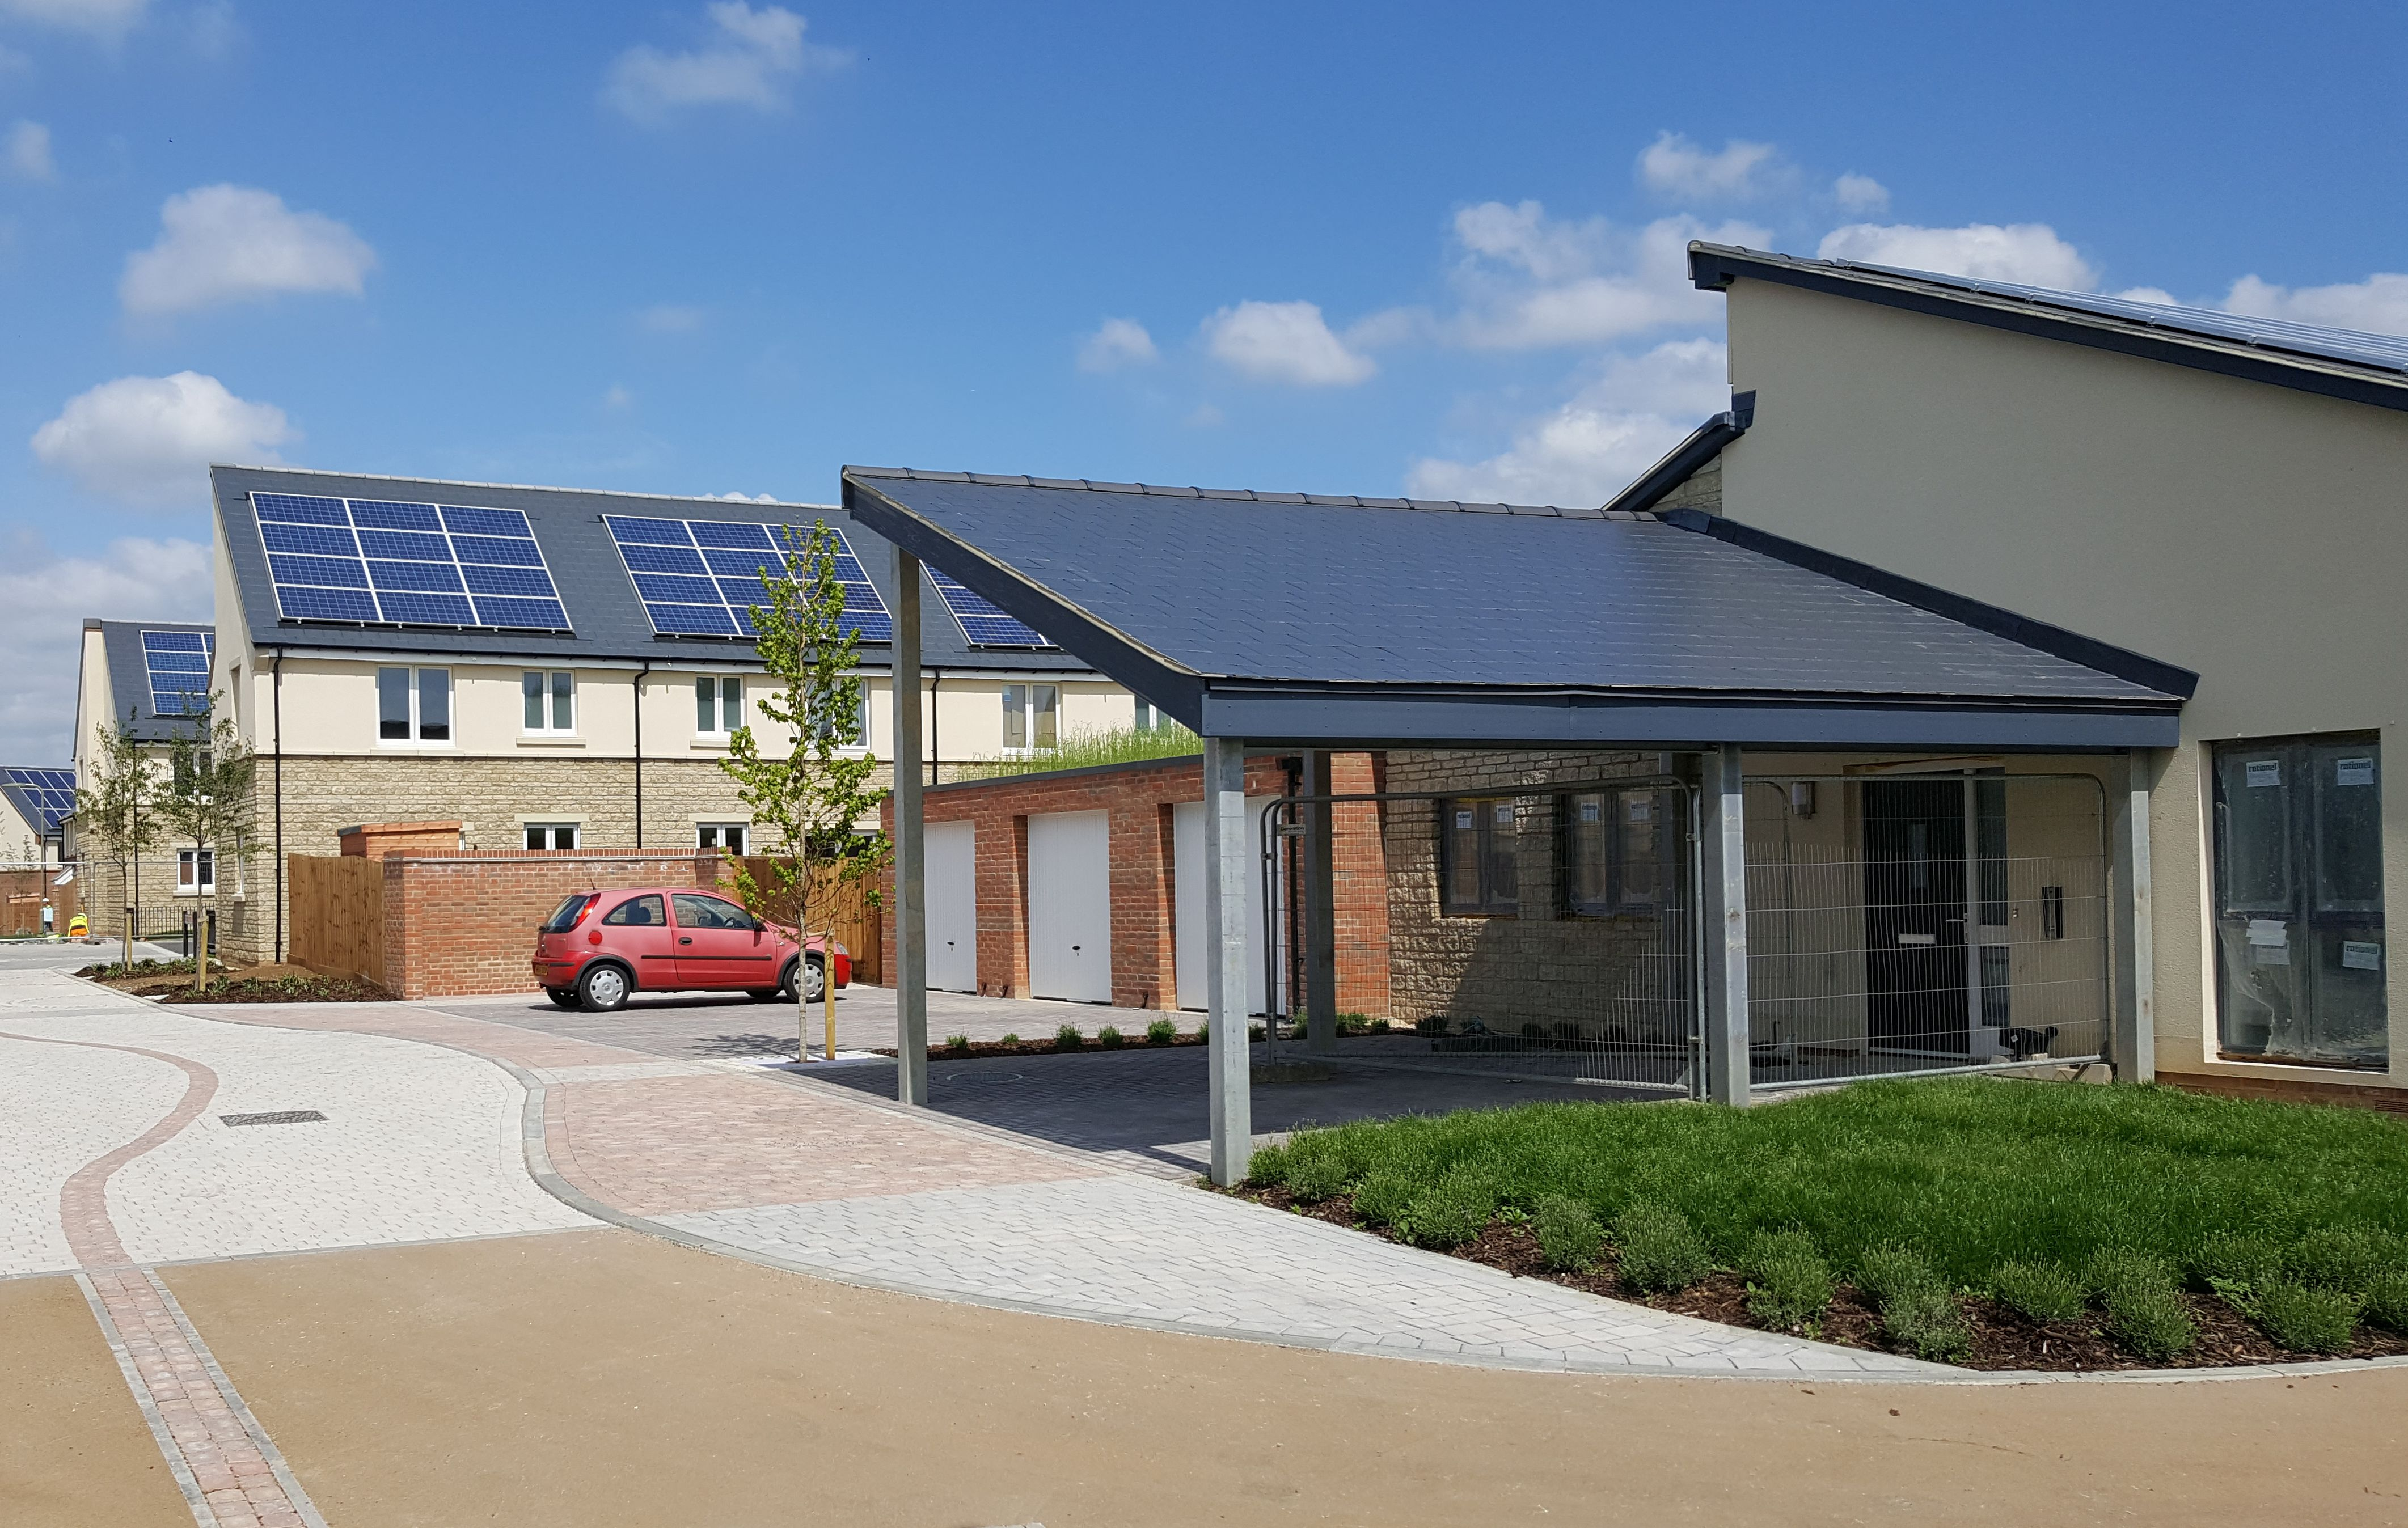 Eco House Bicester photo - 10